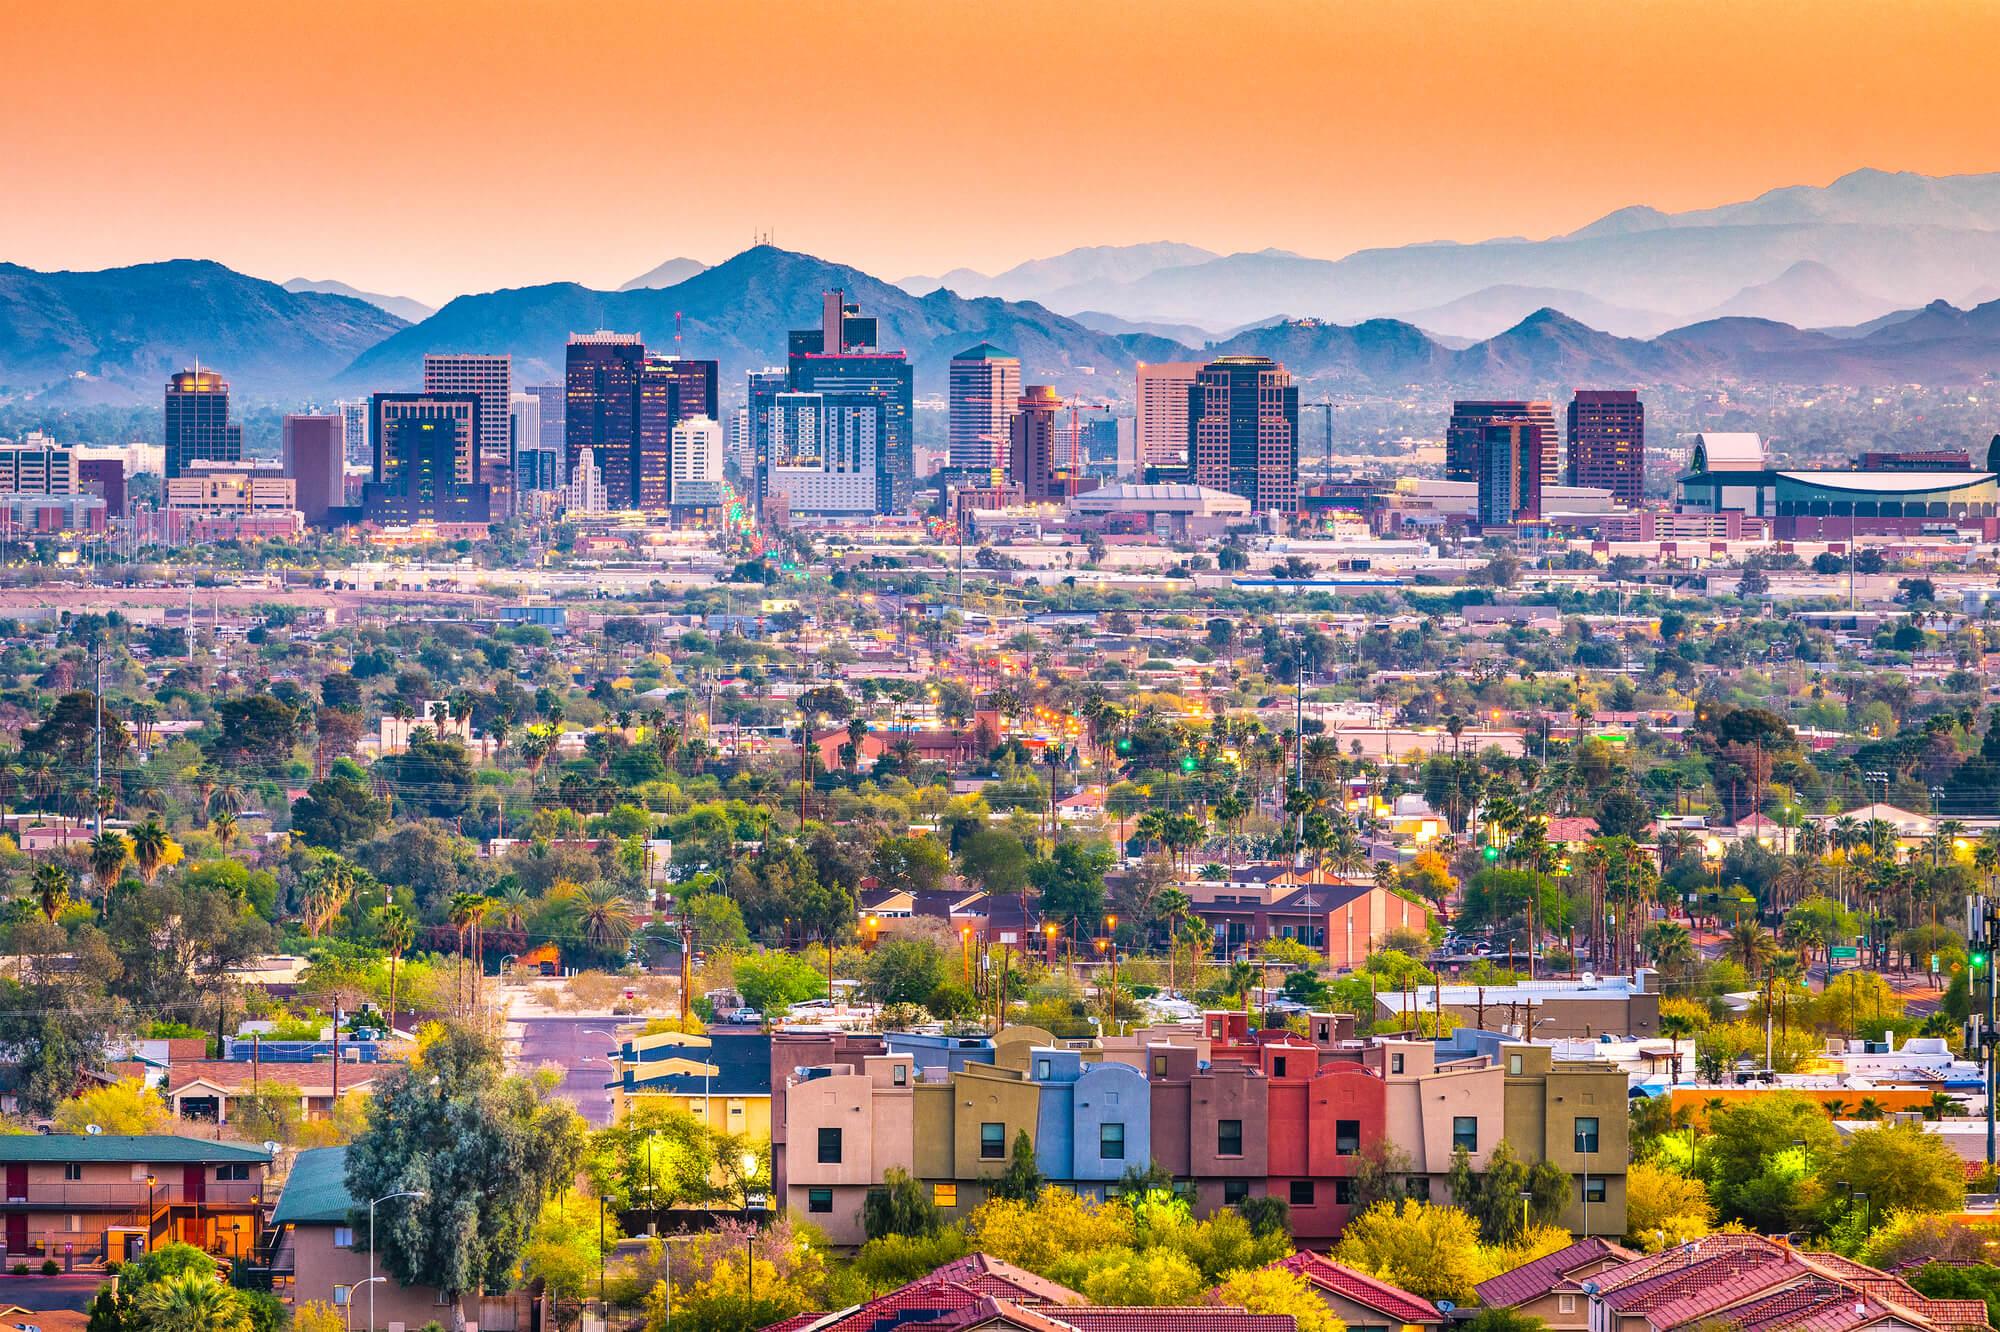 LGBTQ Friendly Cities in Arizona